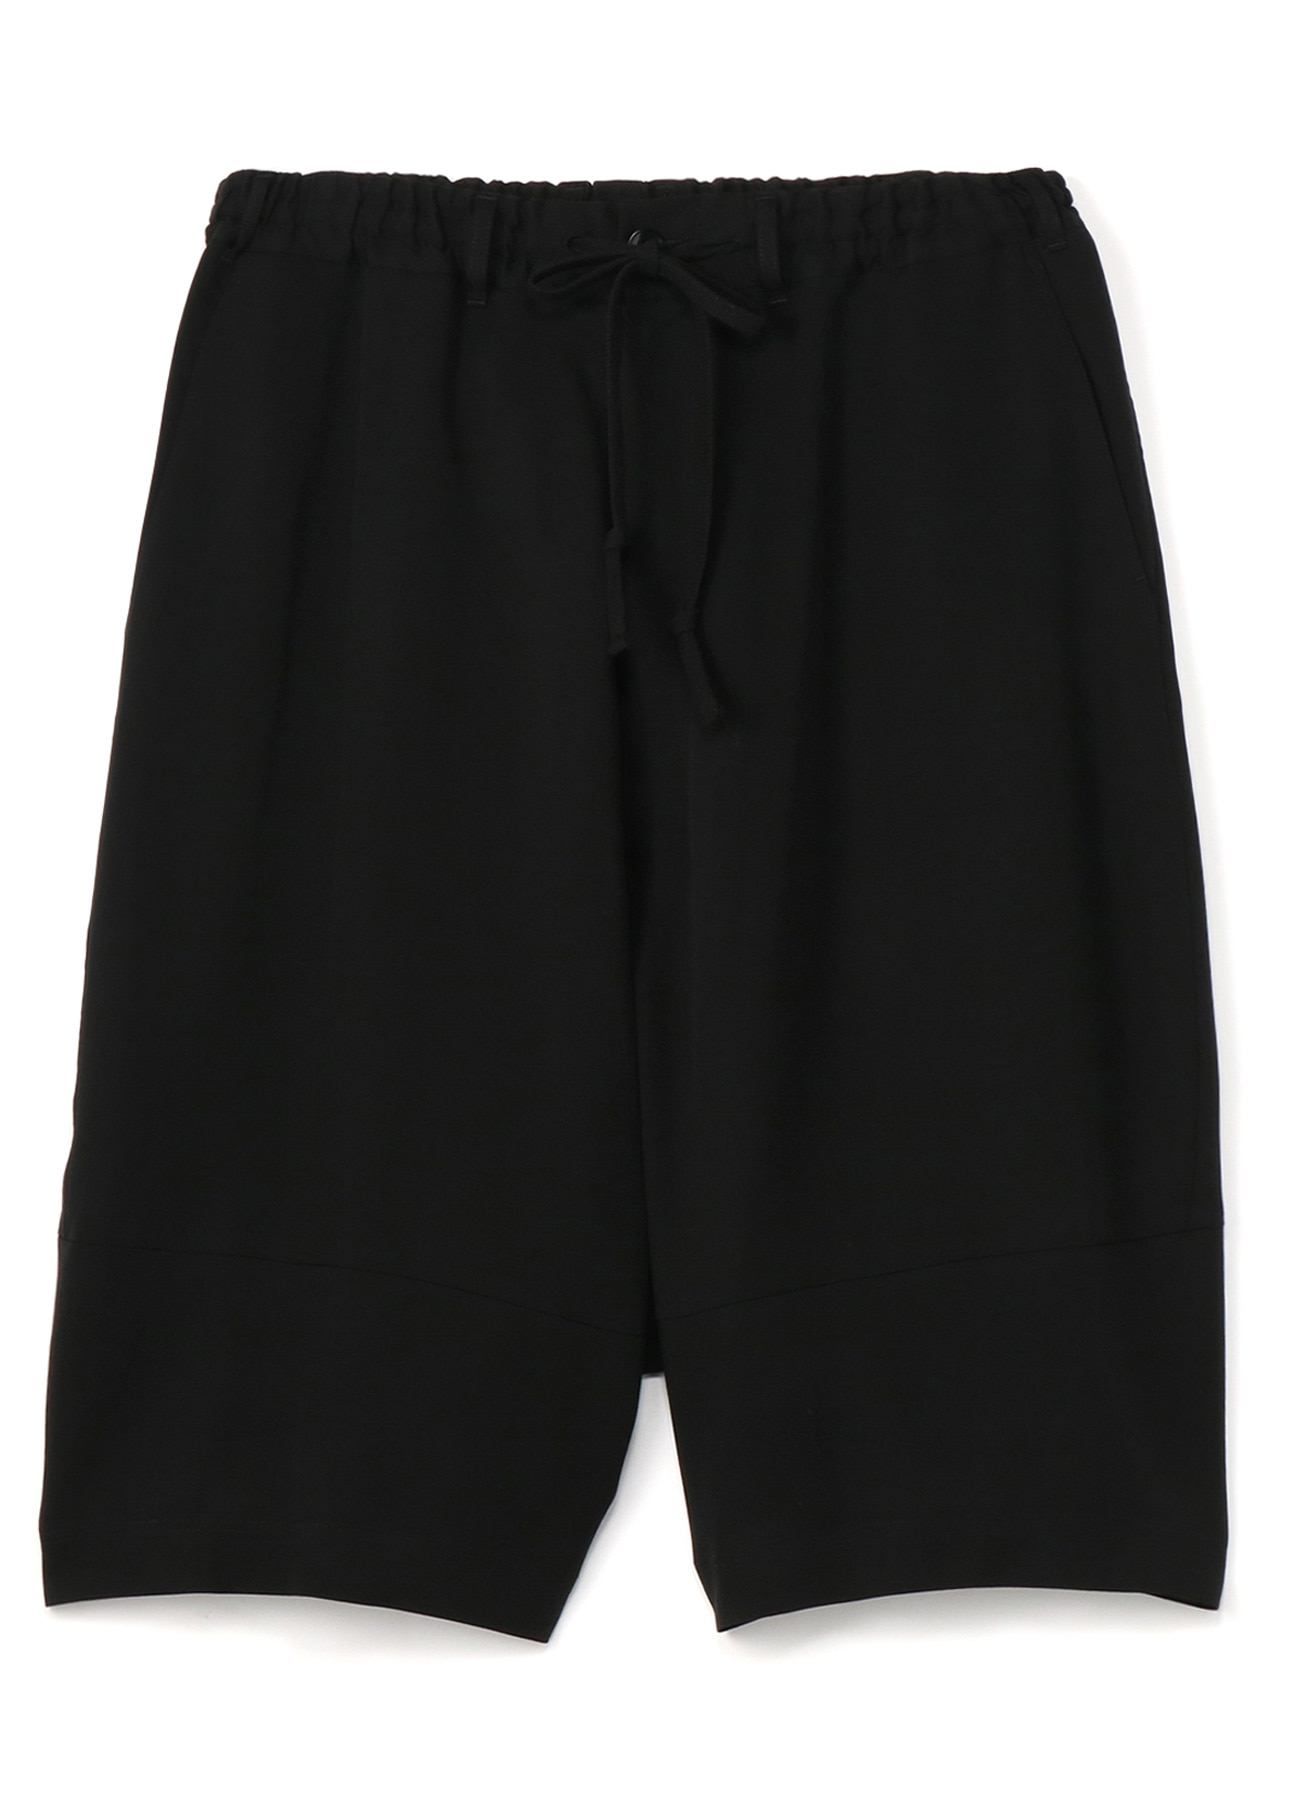 TE / Burberry Tapered Shorts